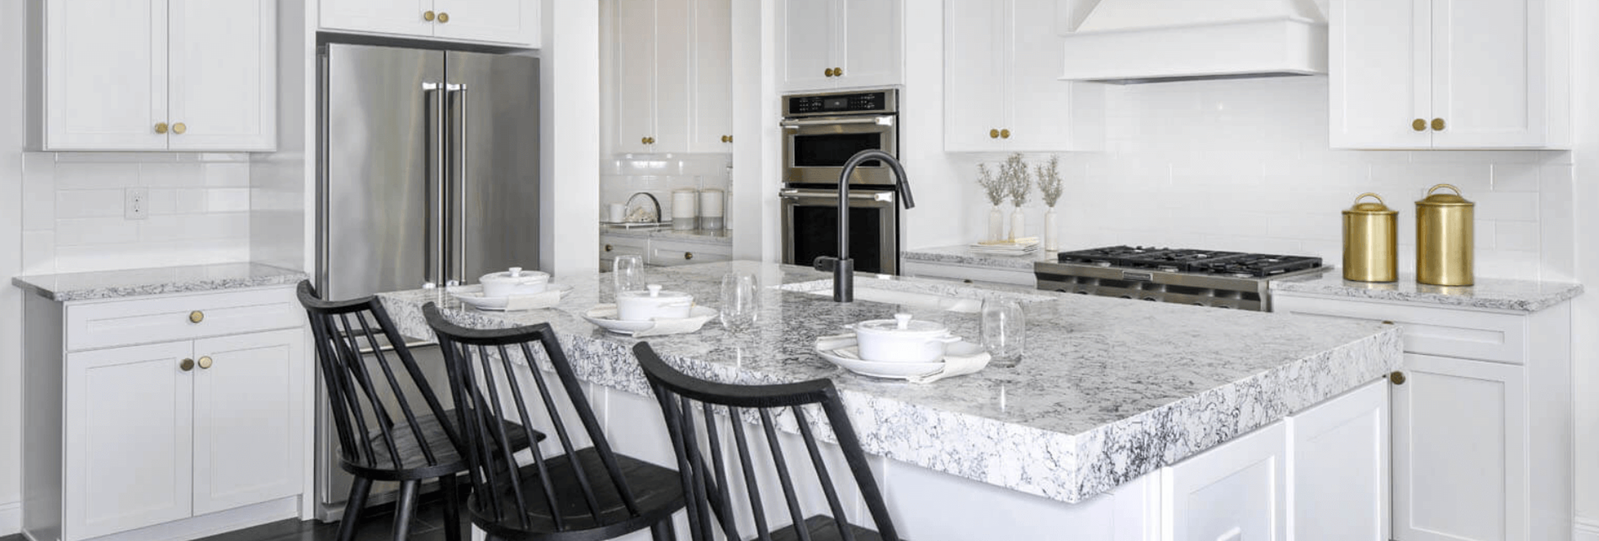 Bexley-Cardel-savannah-kitchen-homebuilders-page.png